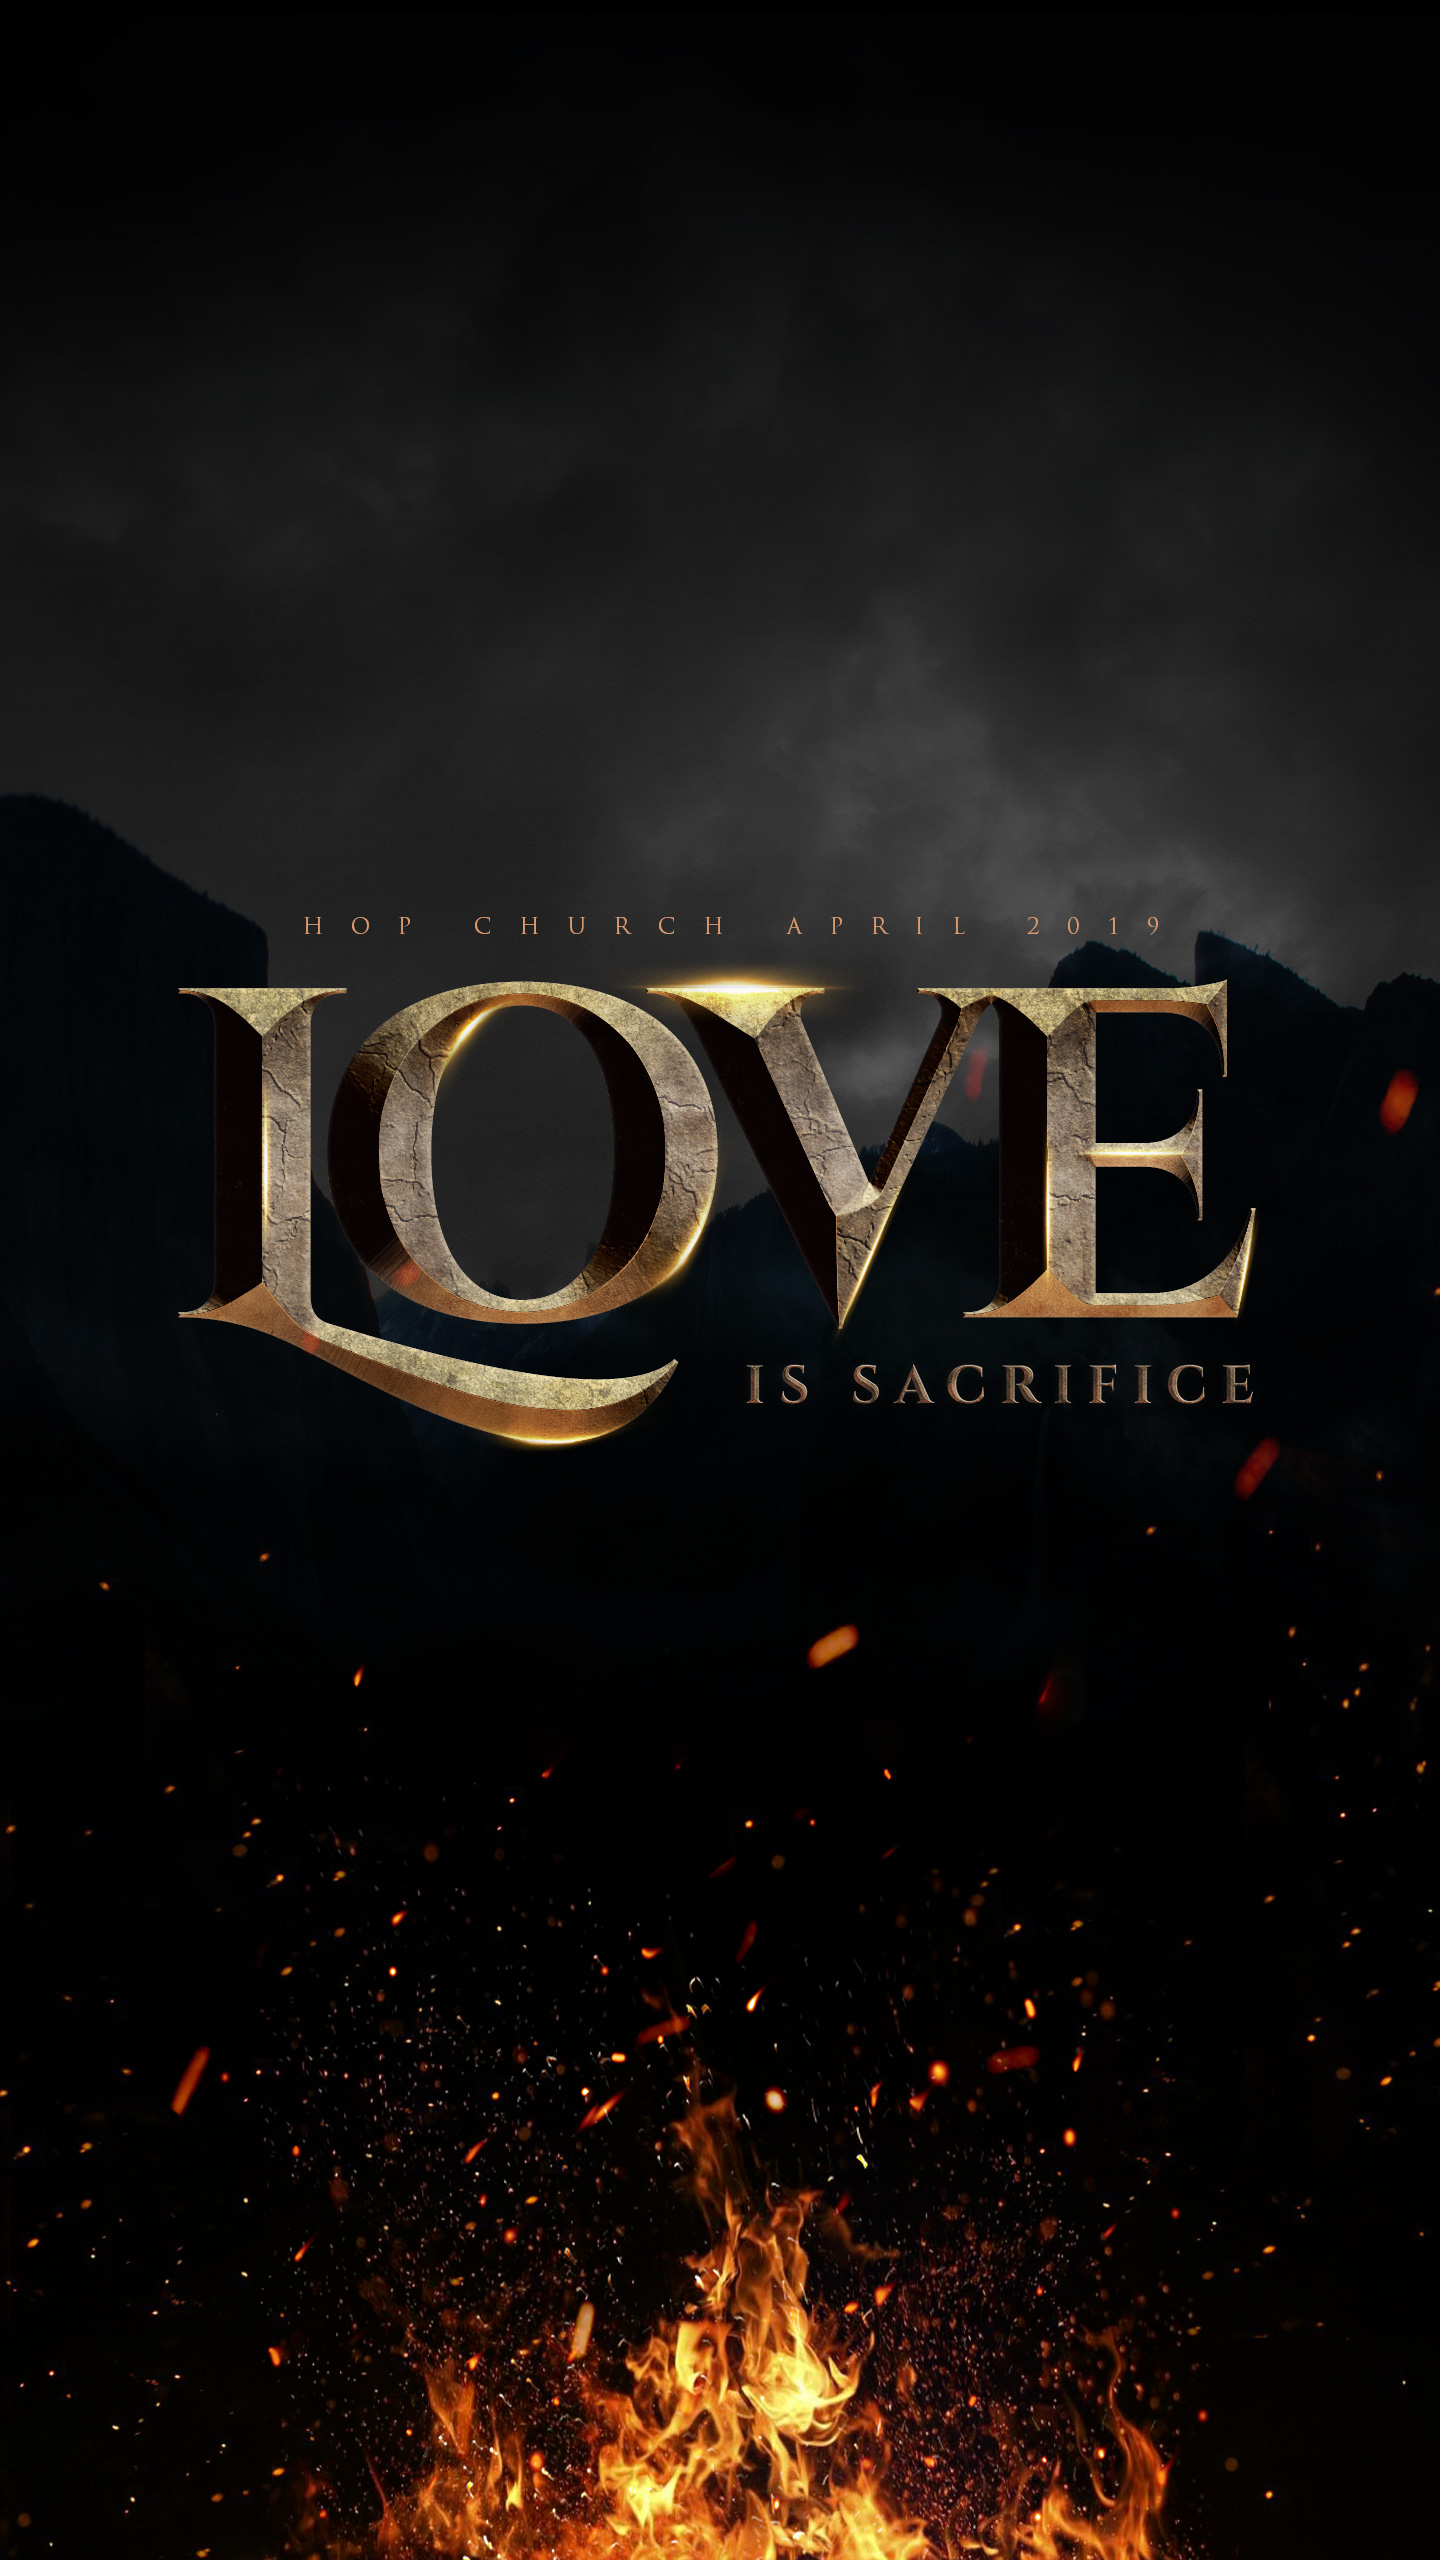 Download wallpaper Love is Sacrifice